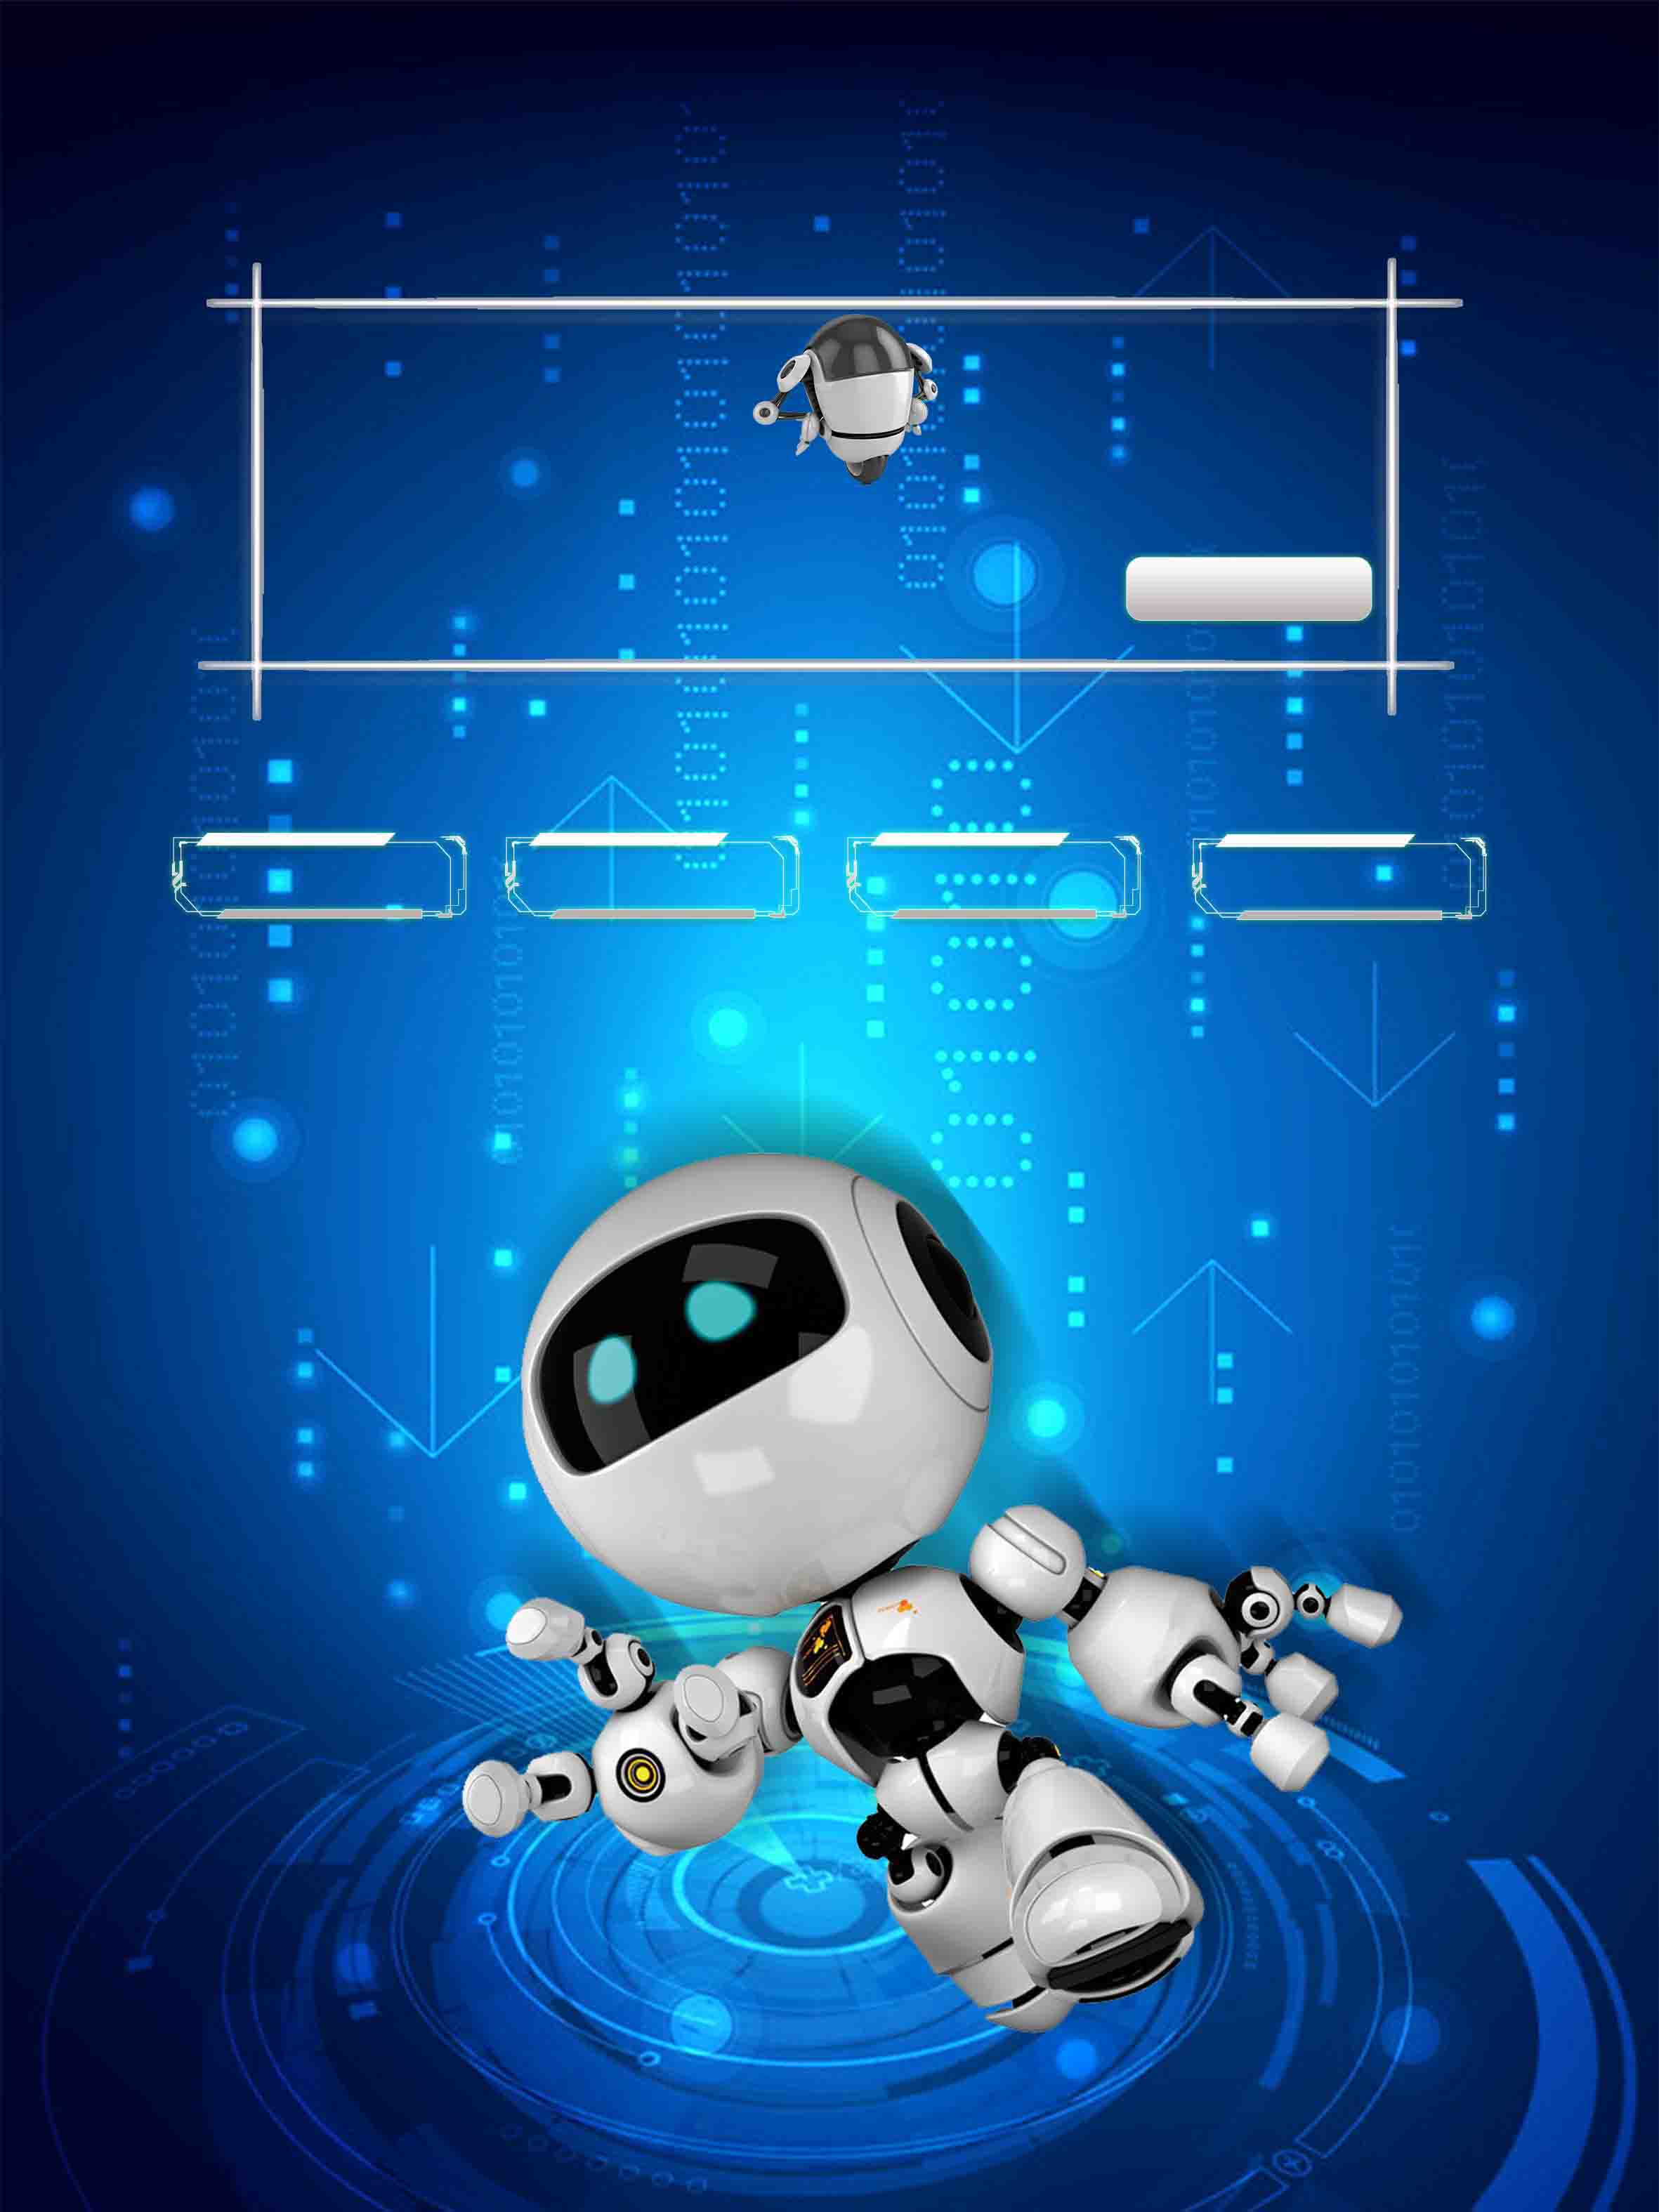 robotics  artificial intelligence  technology  robot  artificial  intelligence background image